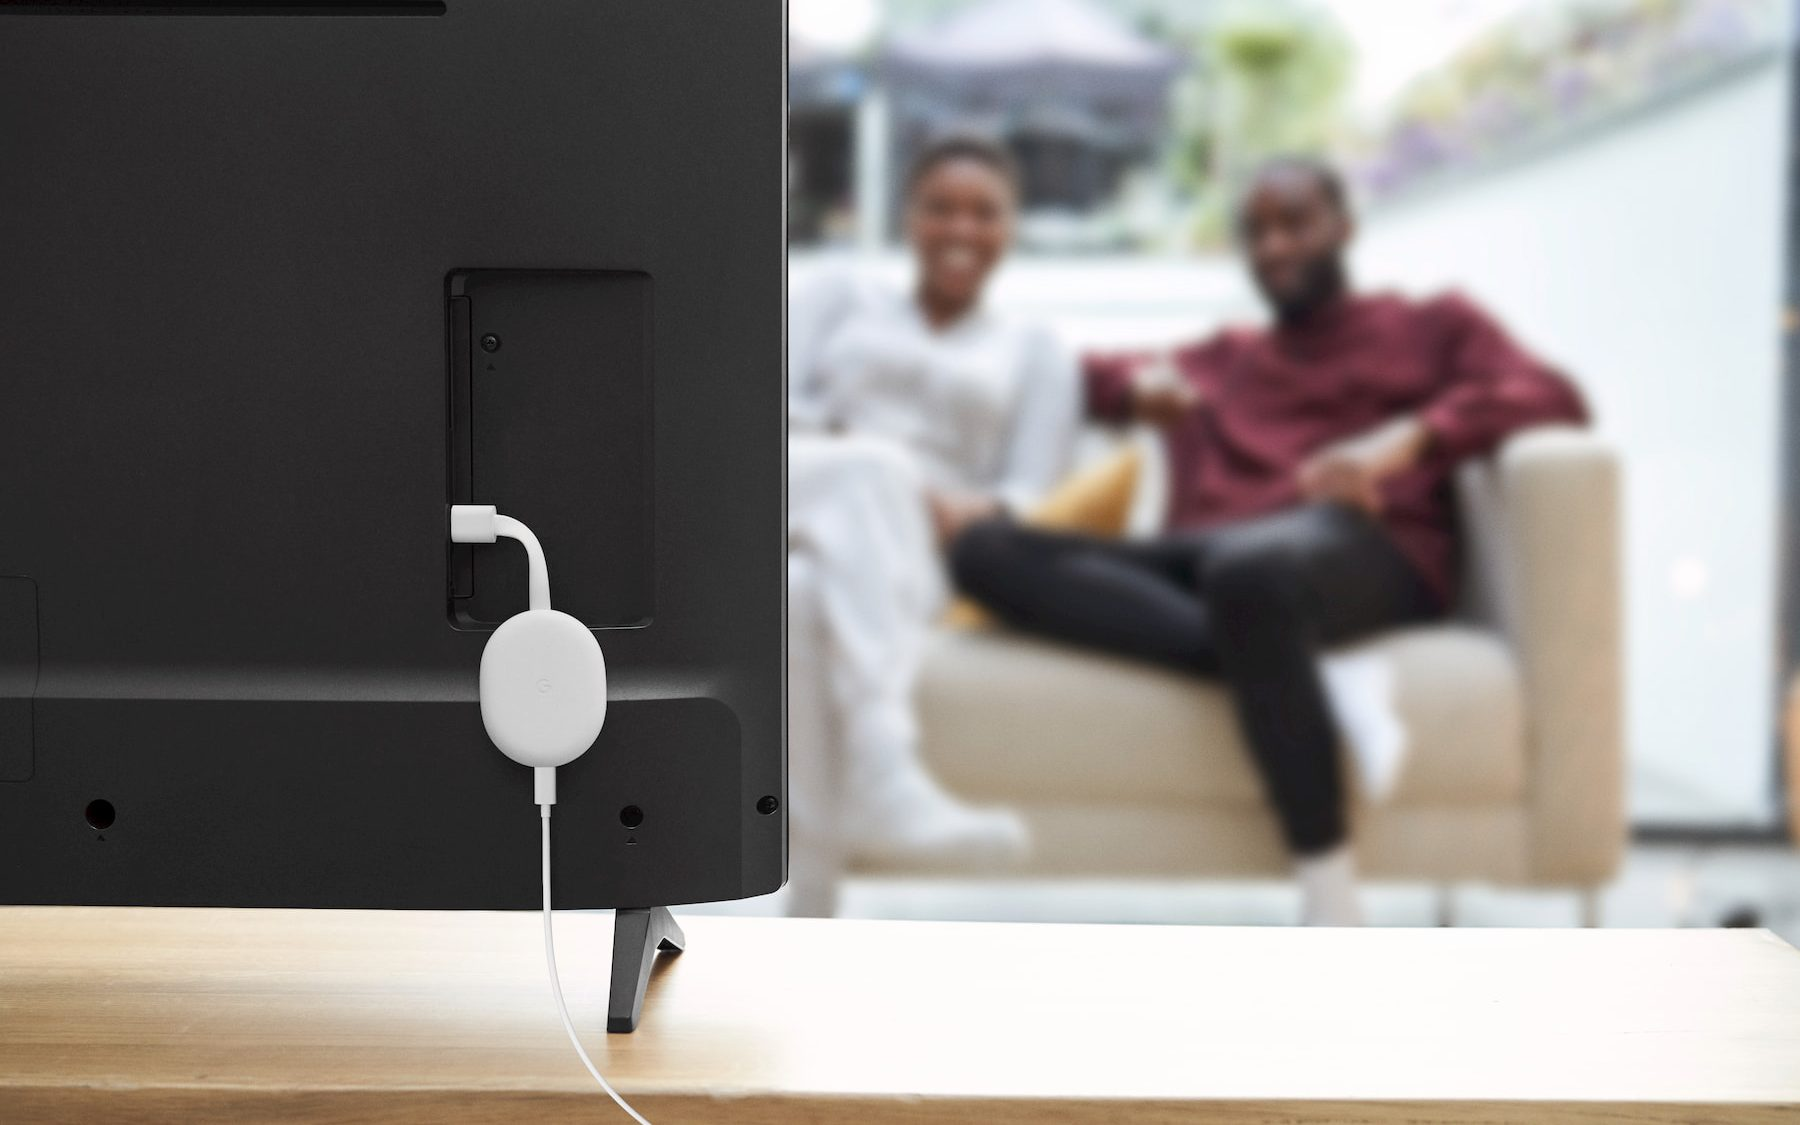 Chromecast with Google TV may soon get Kids Profiles, but multi-user support is still missing